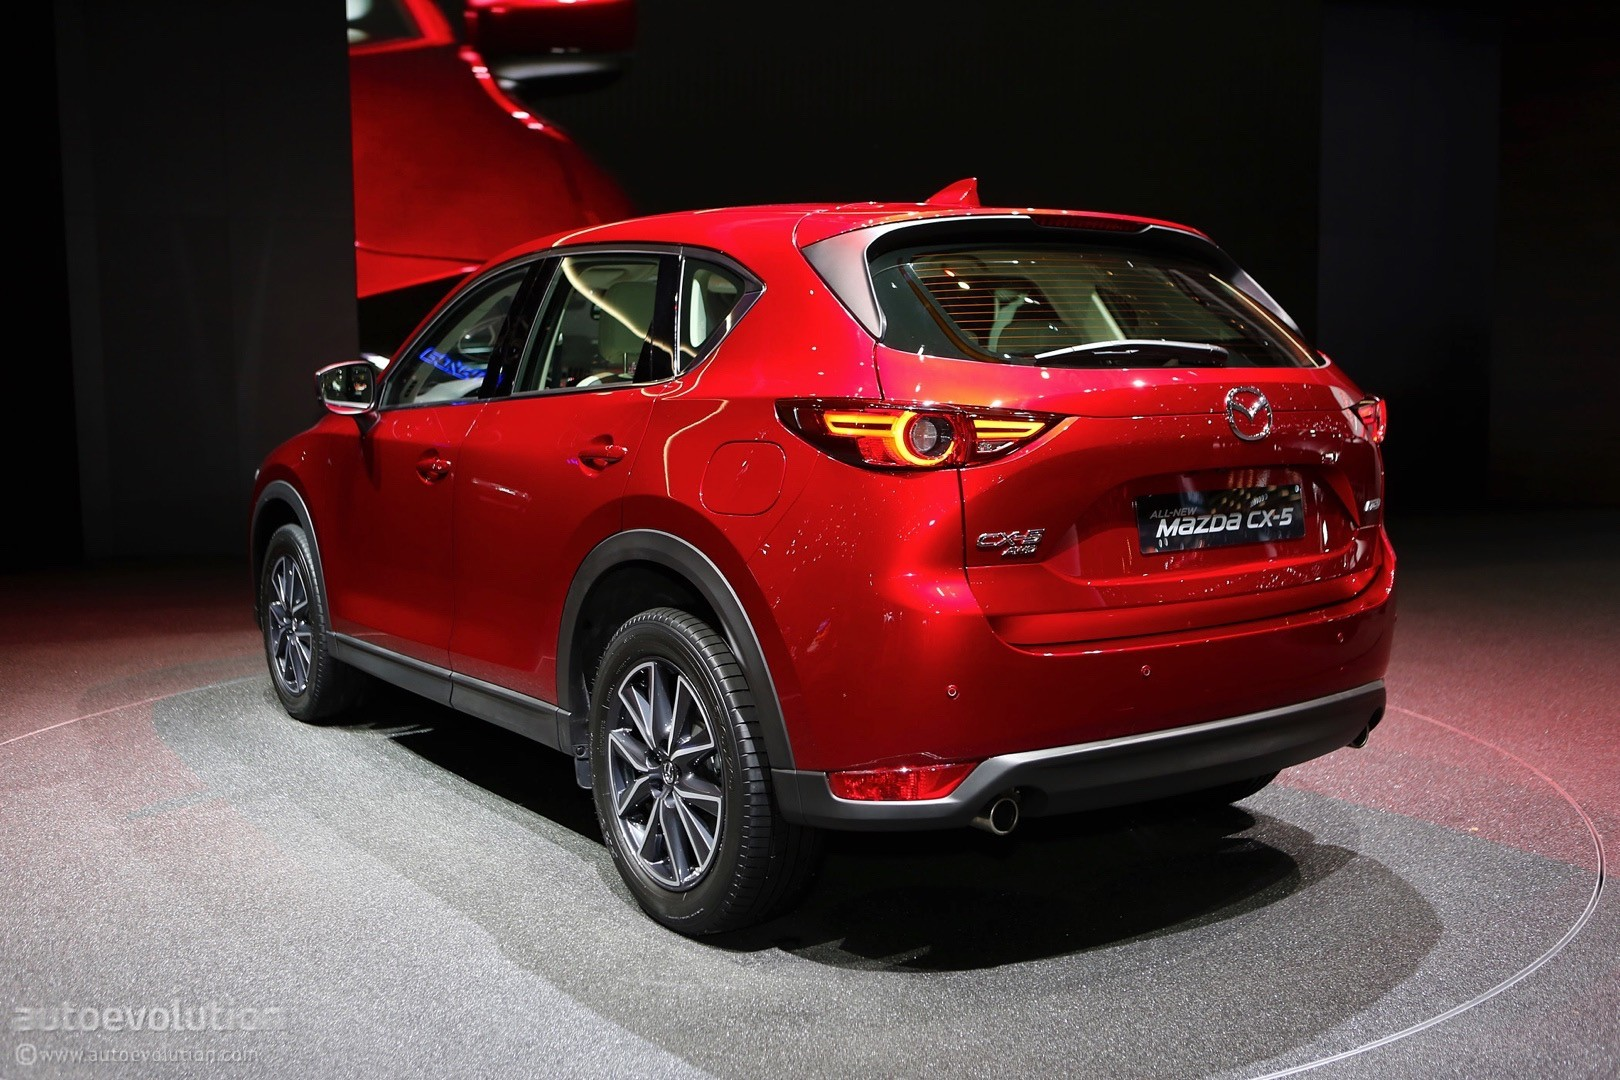 2018 Mazda CX-8 Photographed Uncamouflaged In Chicago